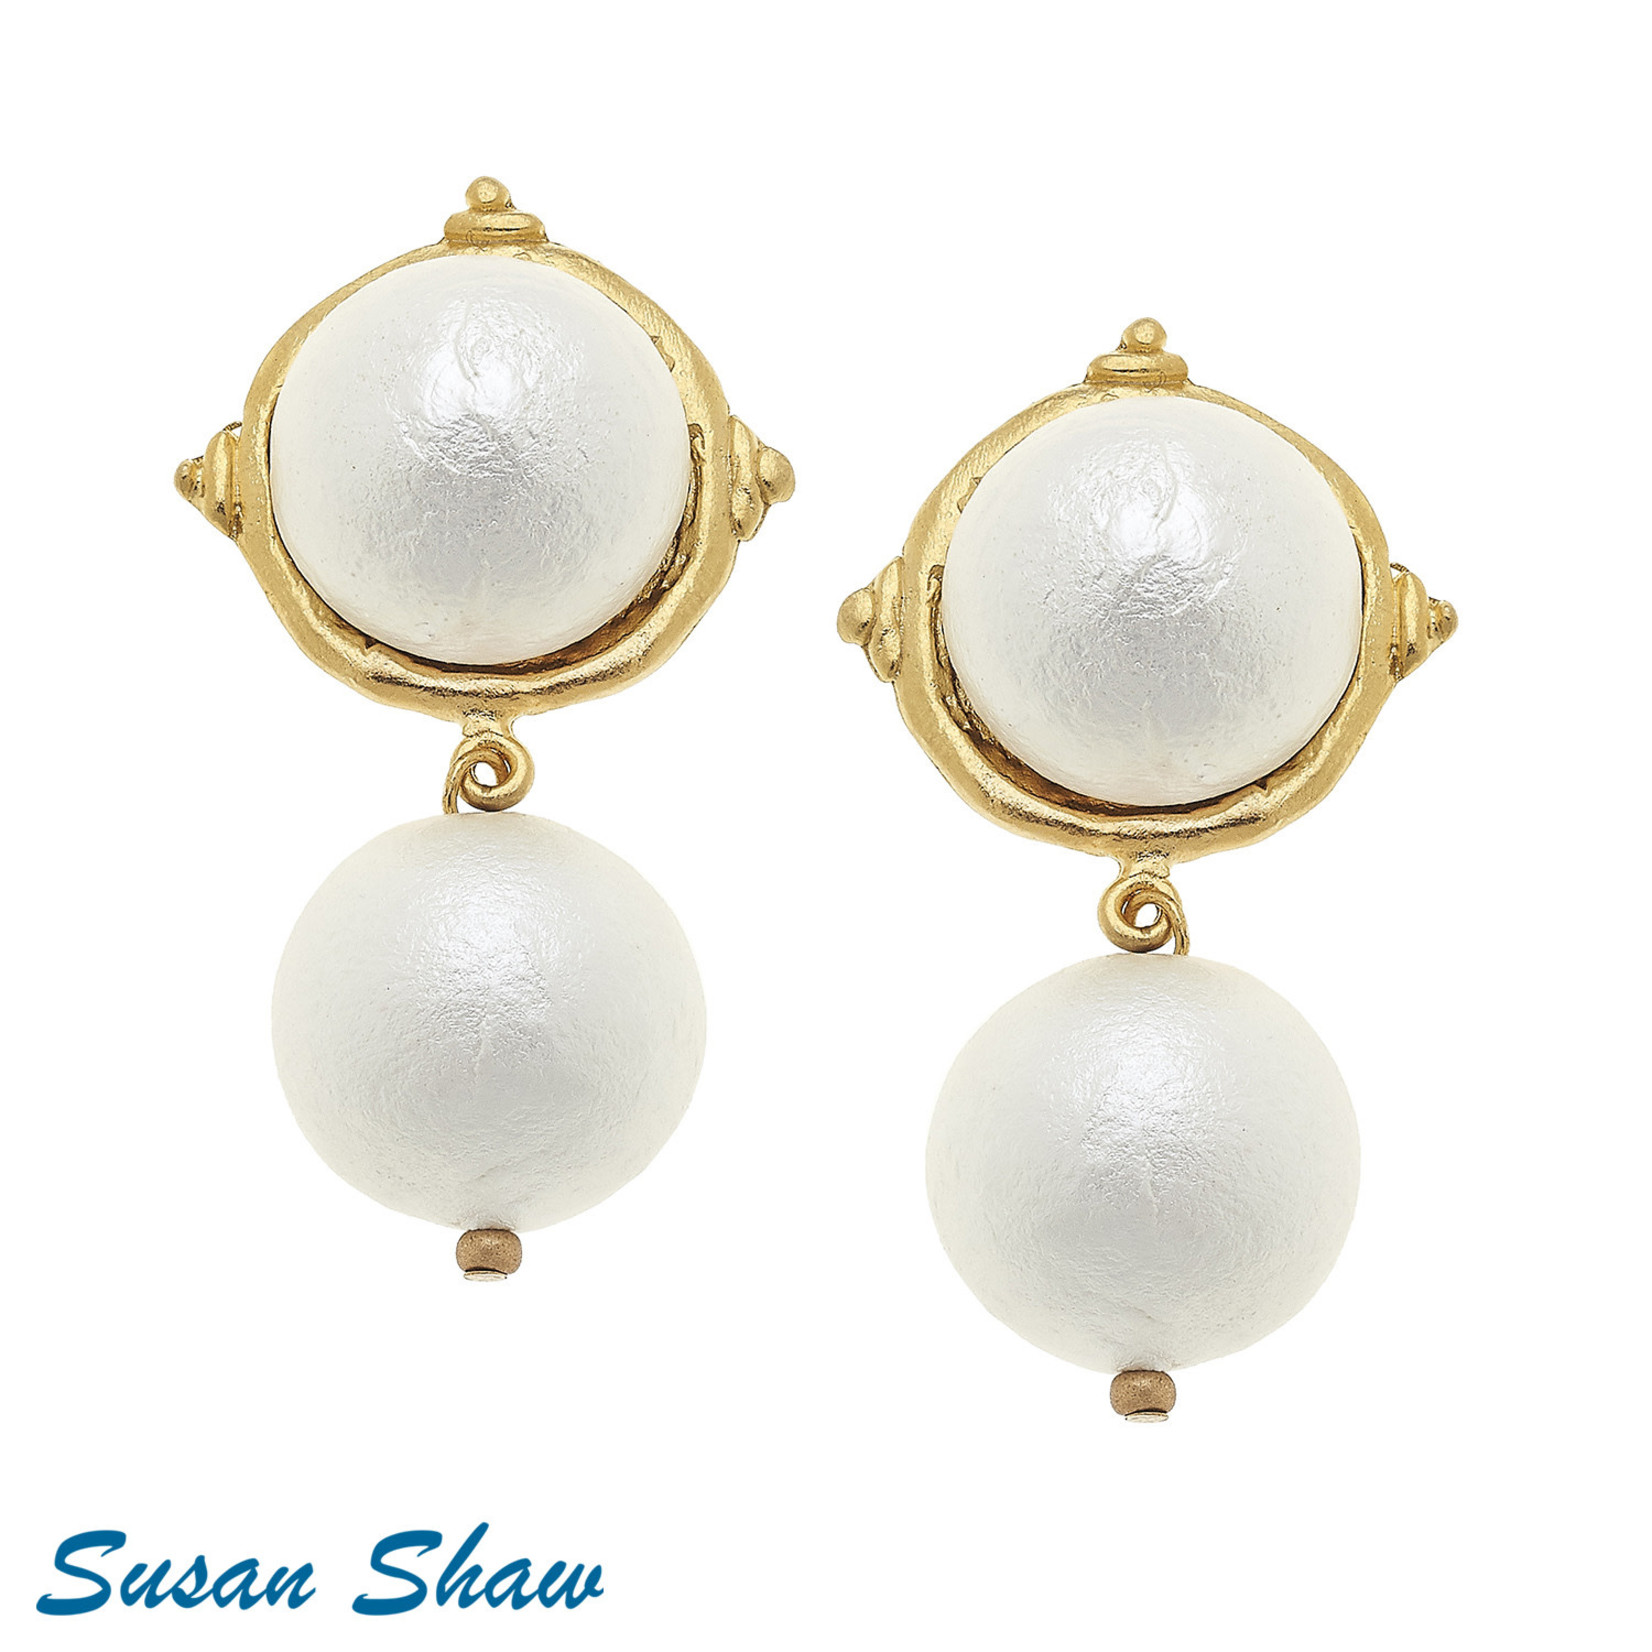 Susan Shaw Susan Shaw Clip Gold and Cotton Pearl Earrings